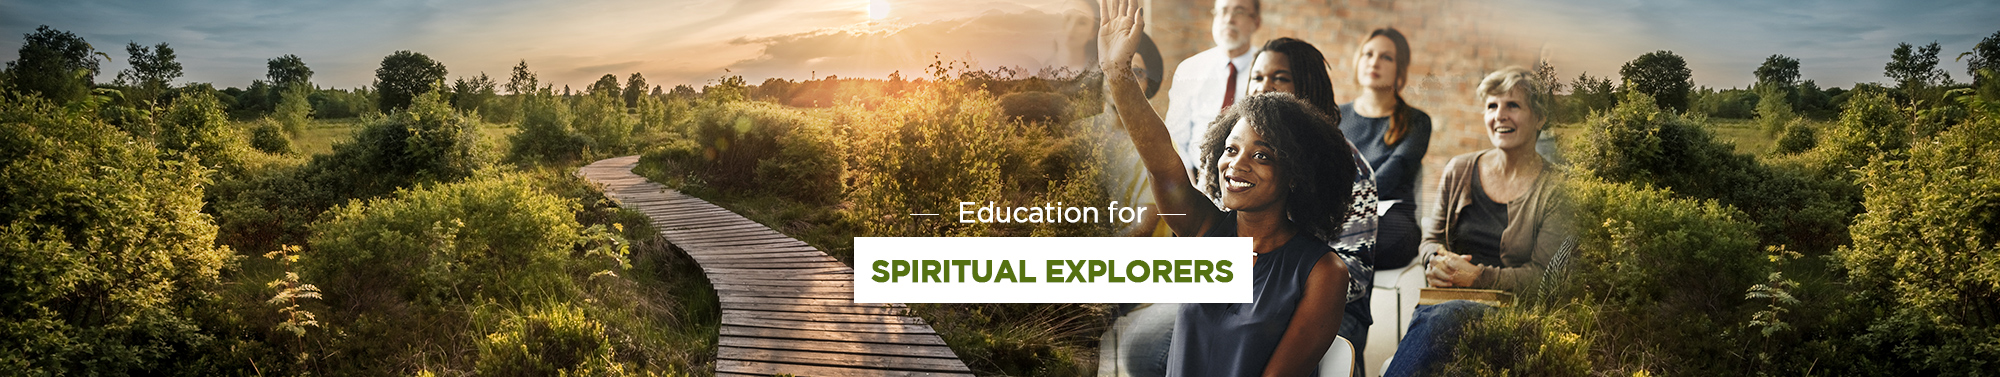 Resources for Spiritual Development